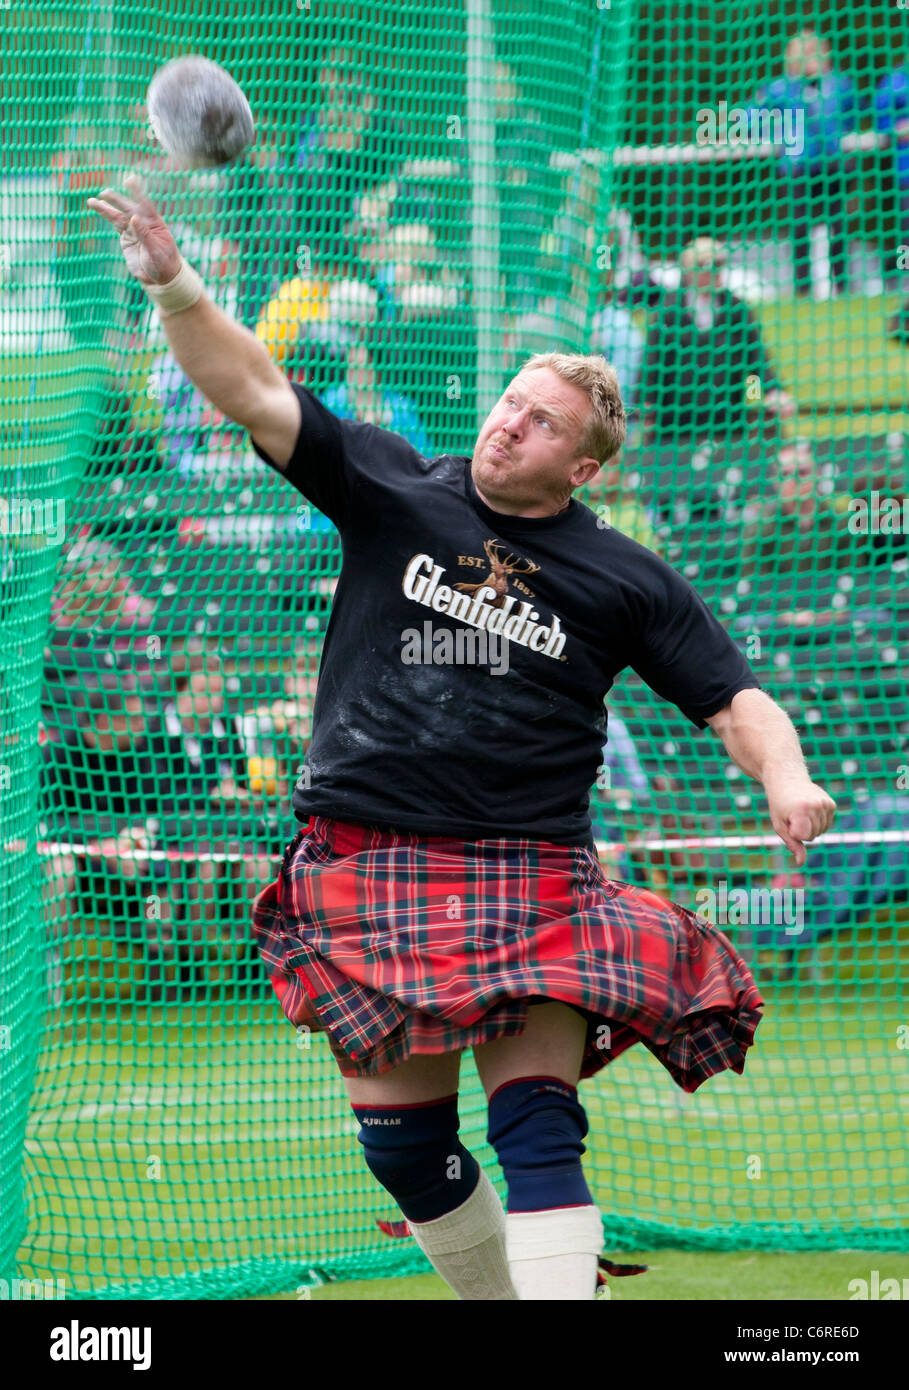 A heavy in a kilt competes in the stone throwing event at the Braemar Highland Gathering in Scotland - Stock Image